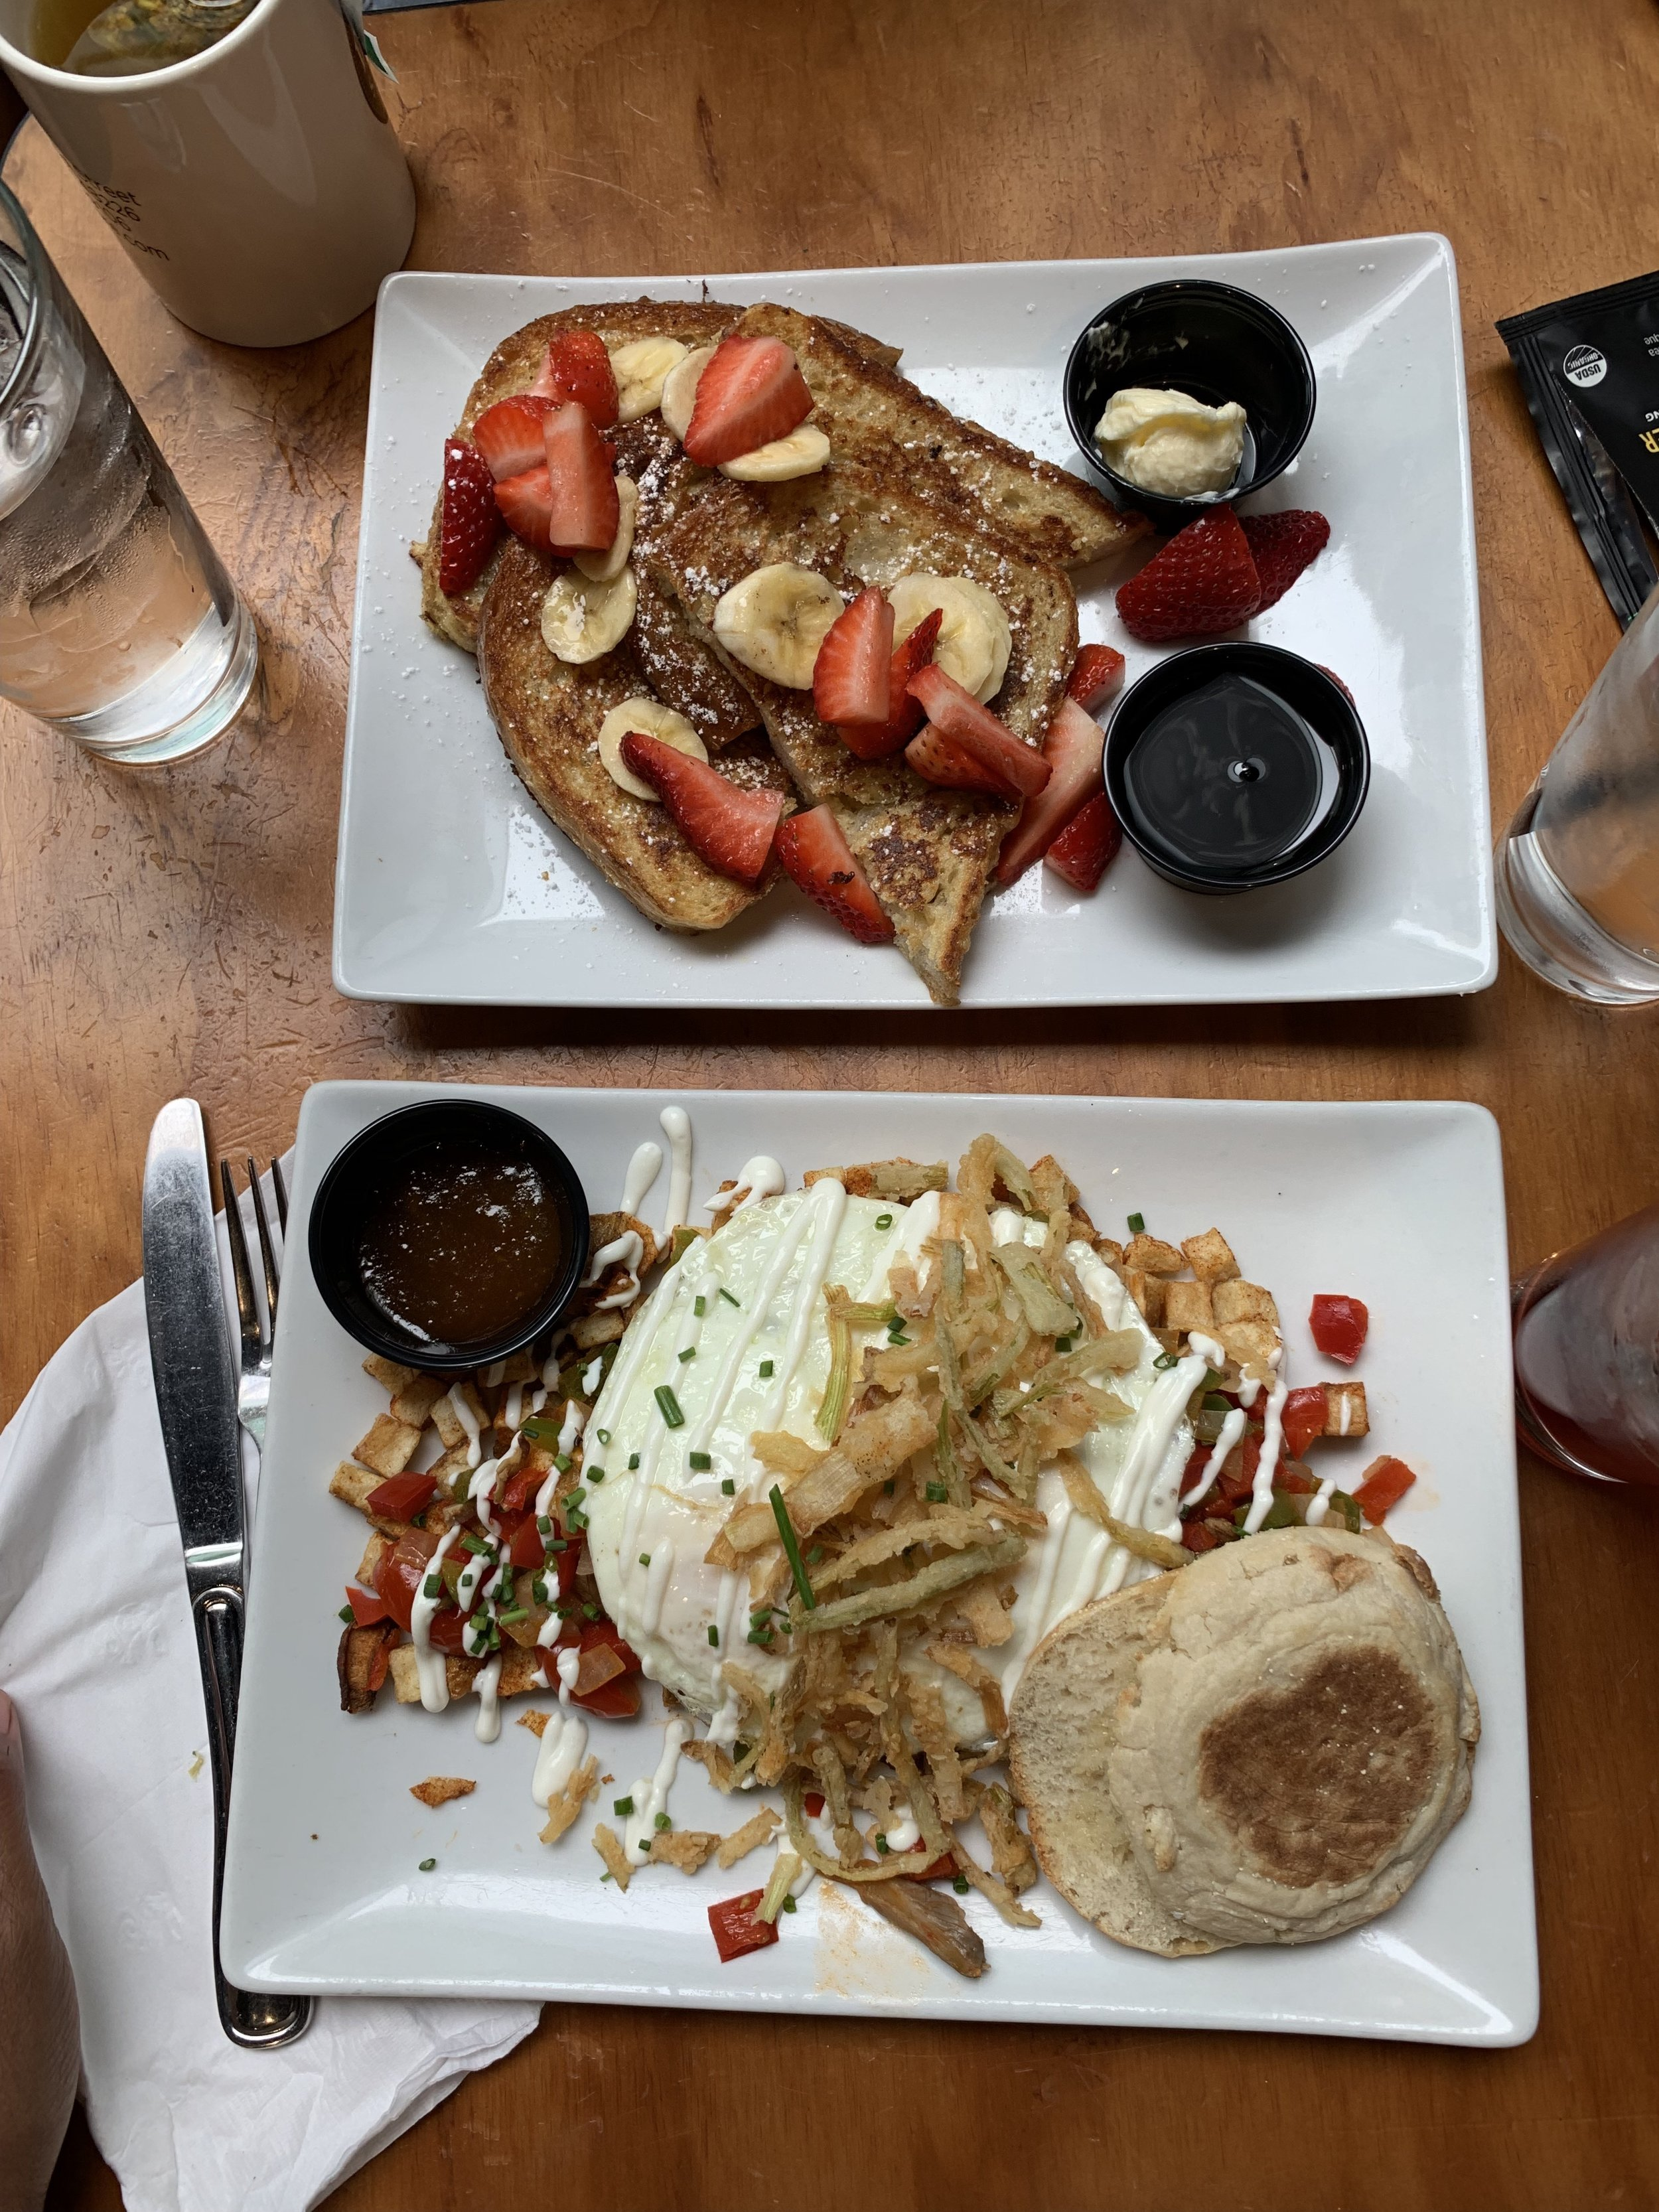 Bomb Brunch at Dime Store